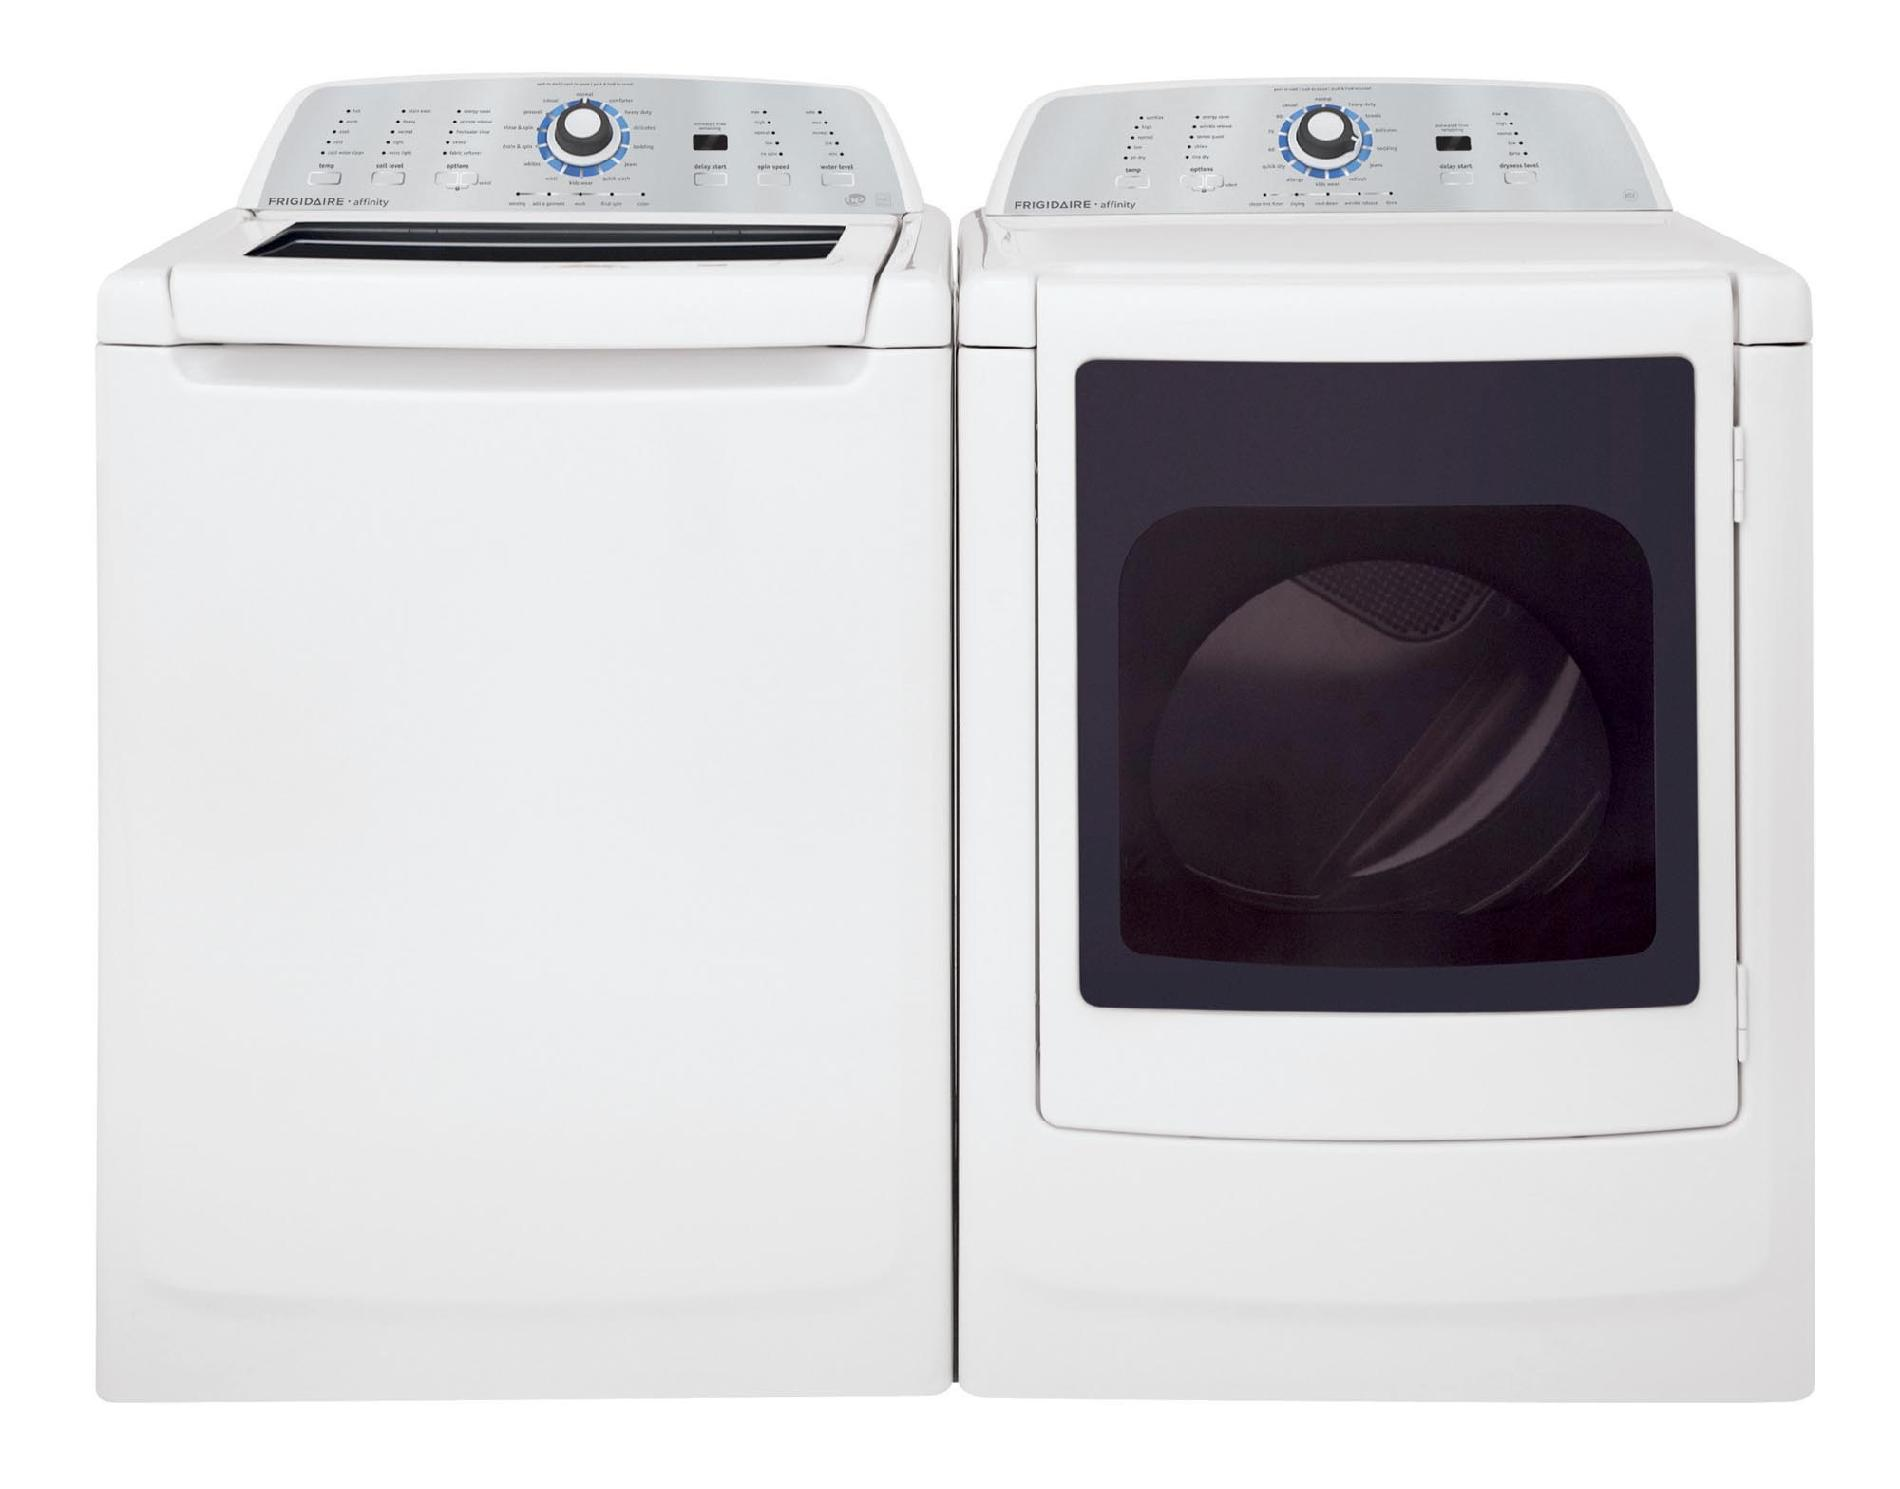 Frigidaire Affinity 7.0 cu. ft. Electric Dryer w/ Stainless-Steel Tumbler - White